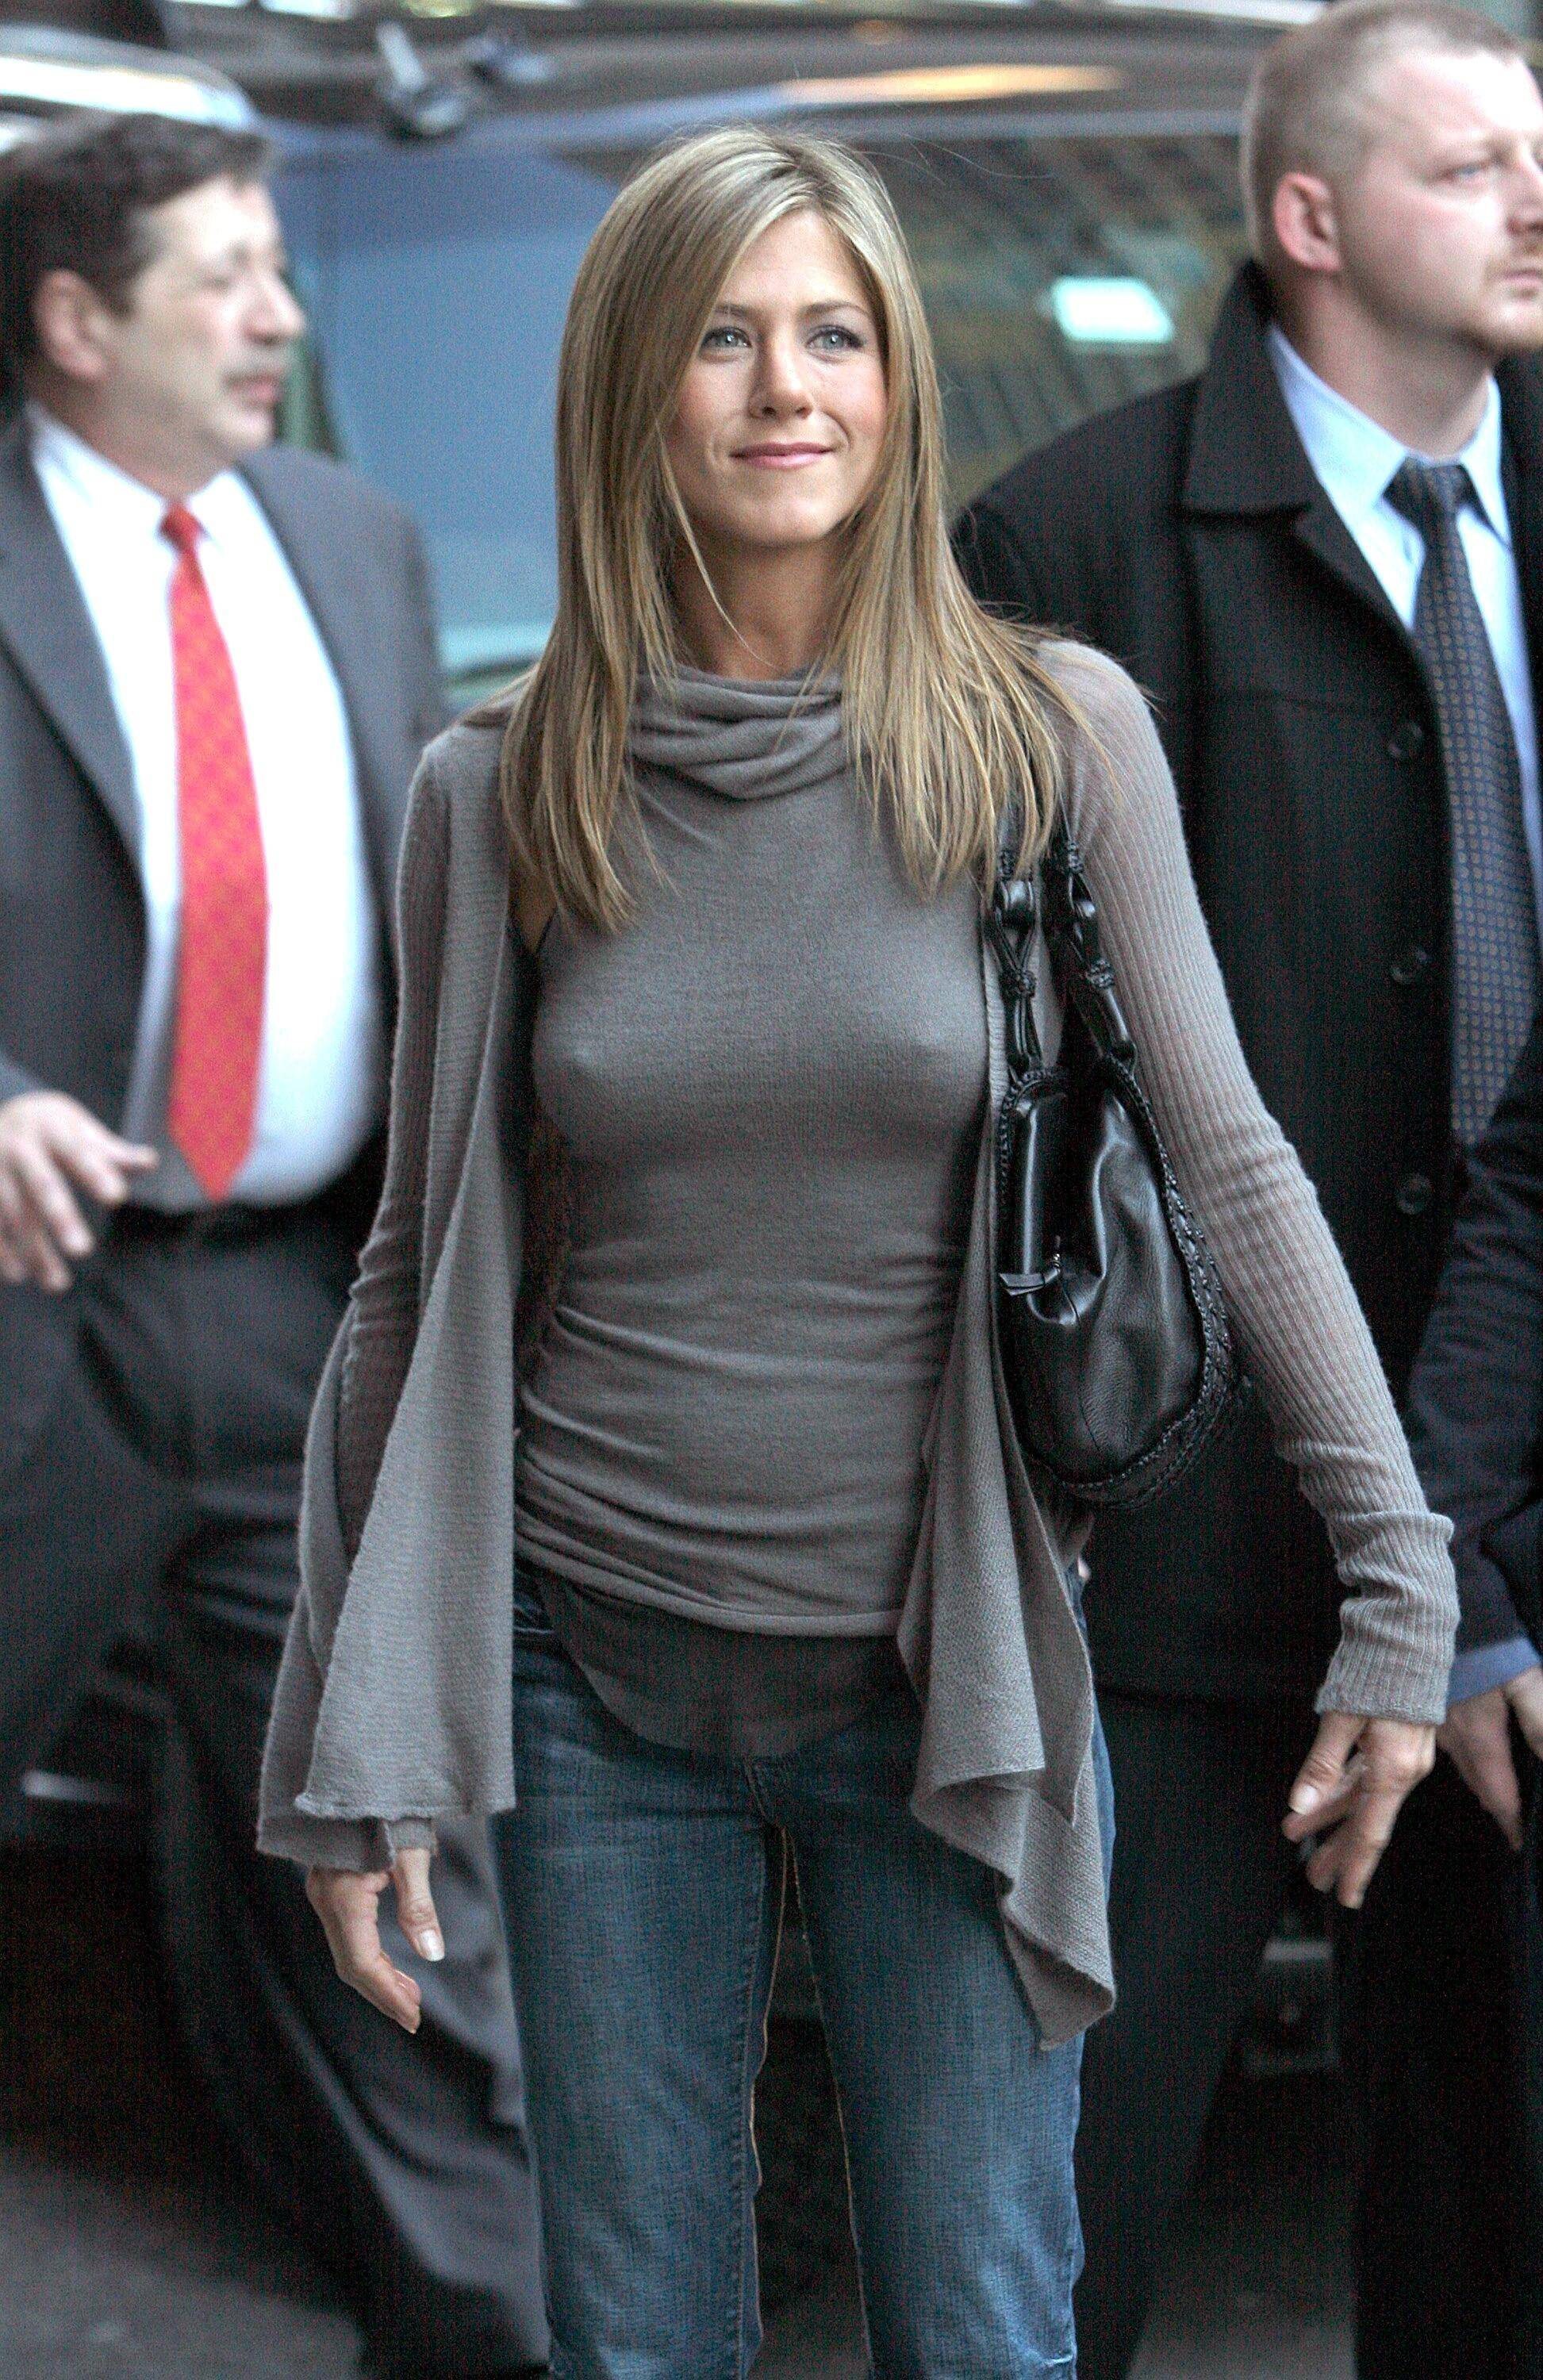 pokies Jennifer aniston